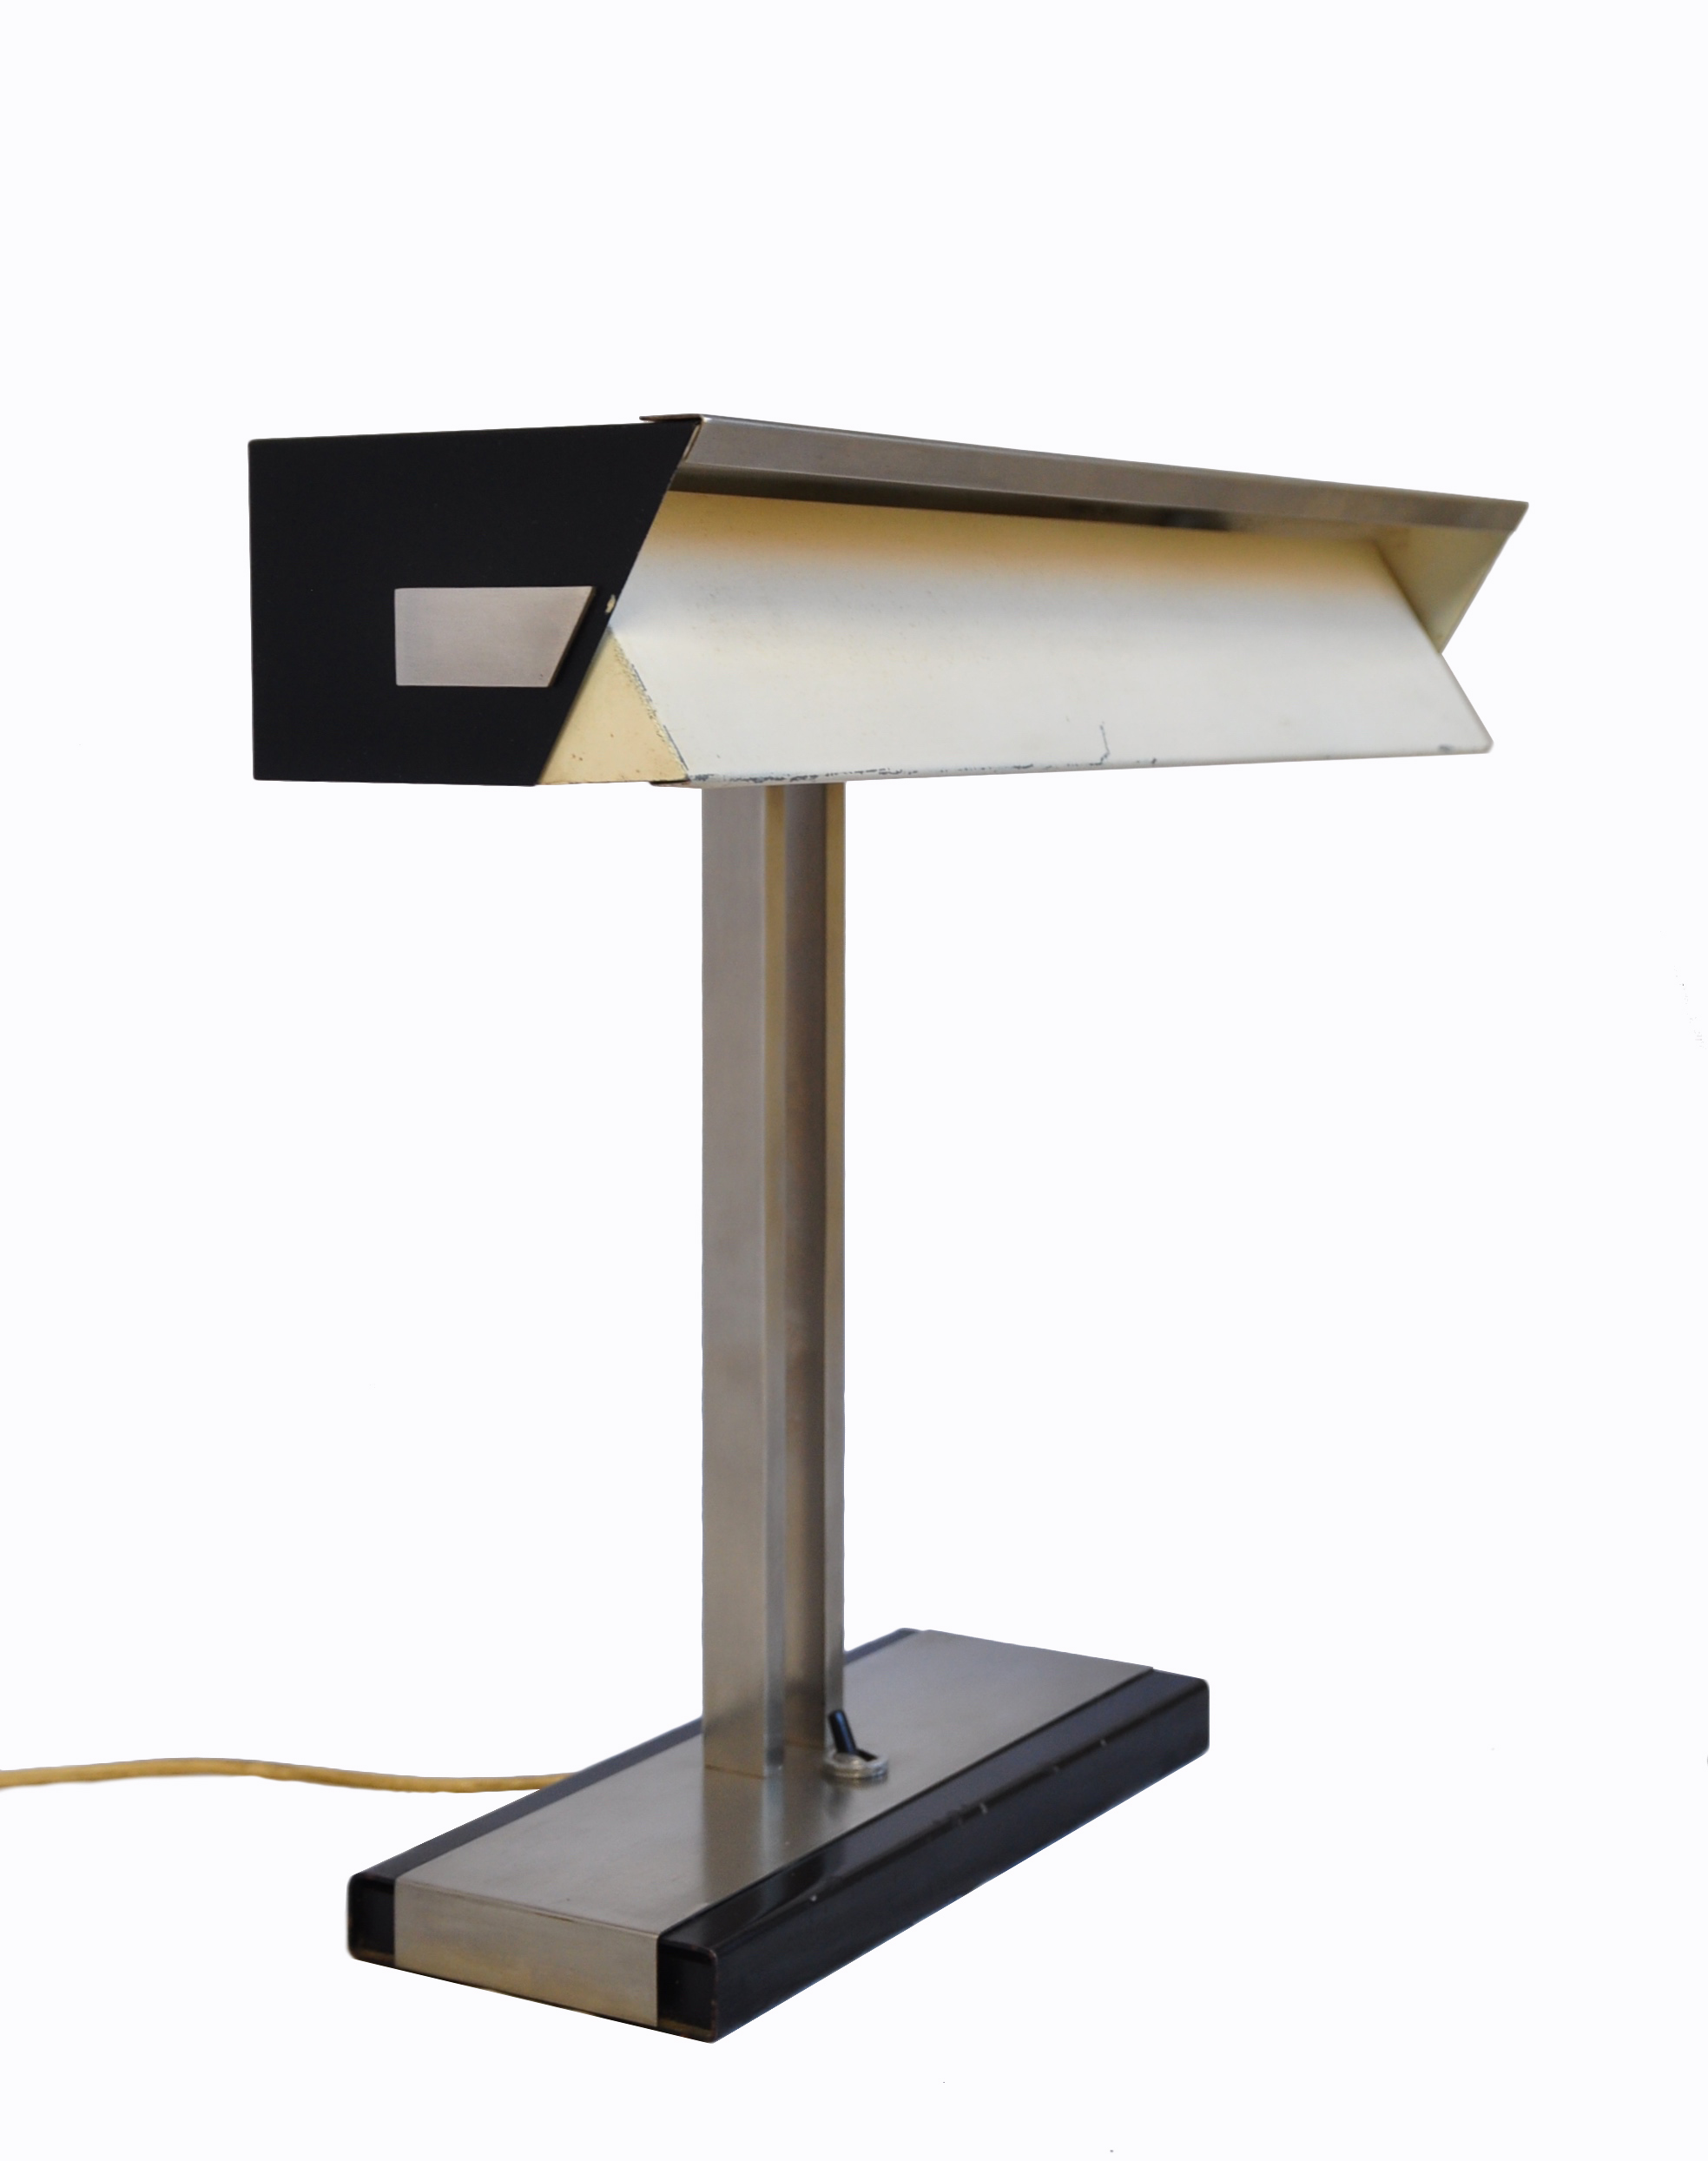 product from detail speaker diasonic led with bluetooth desk lamp